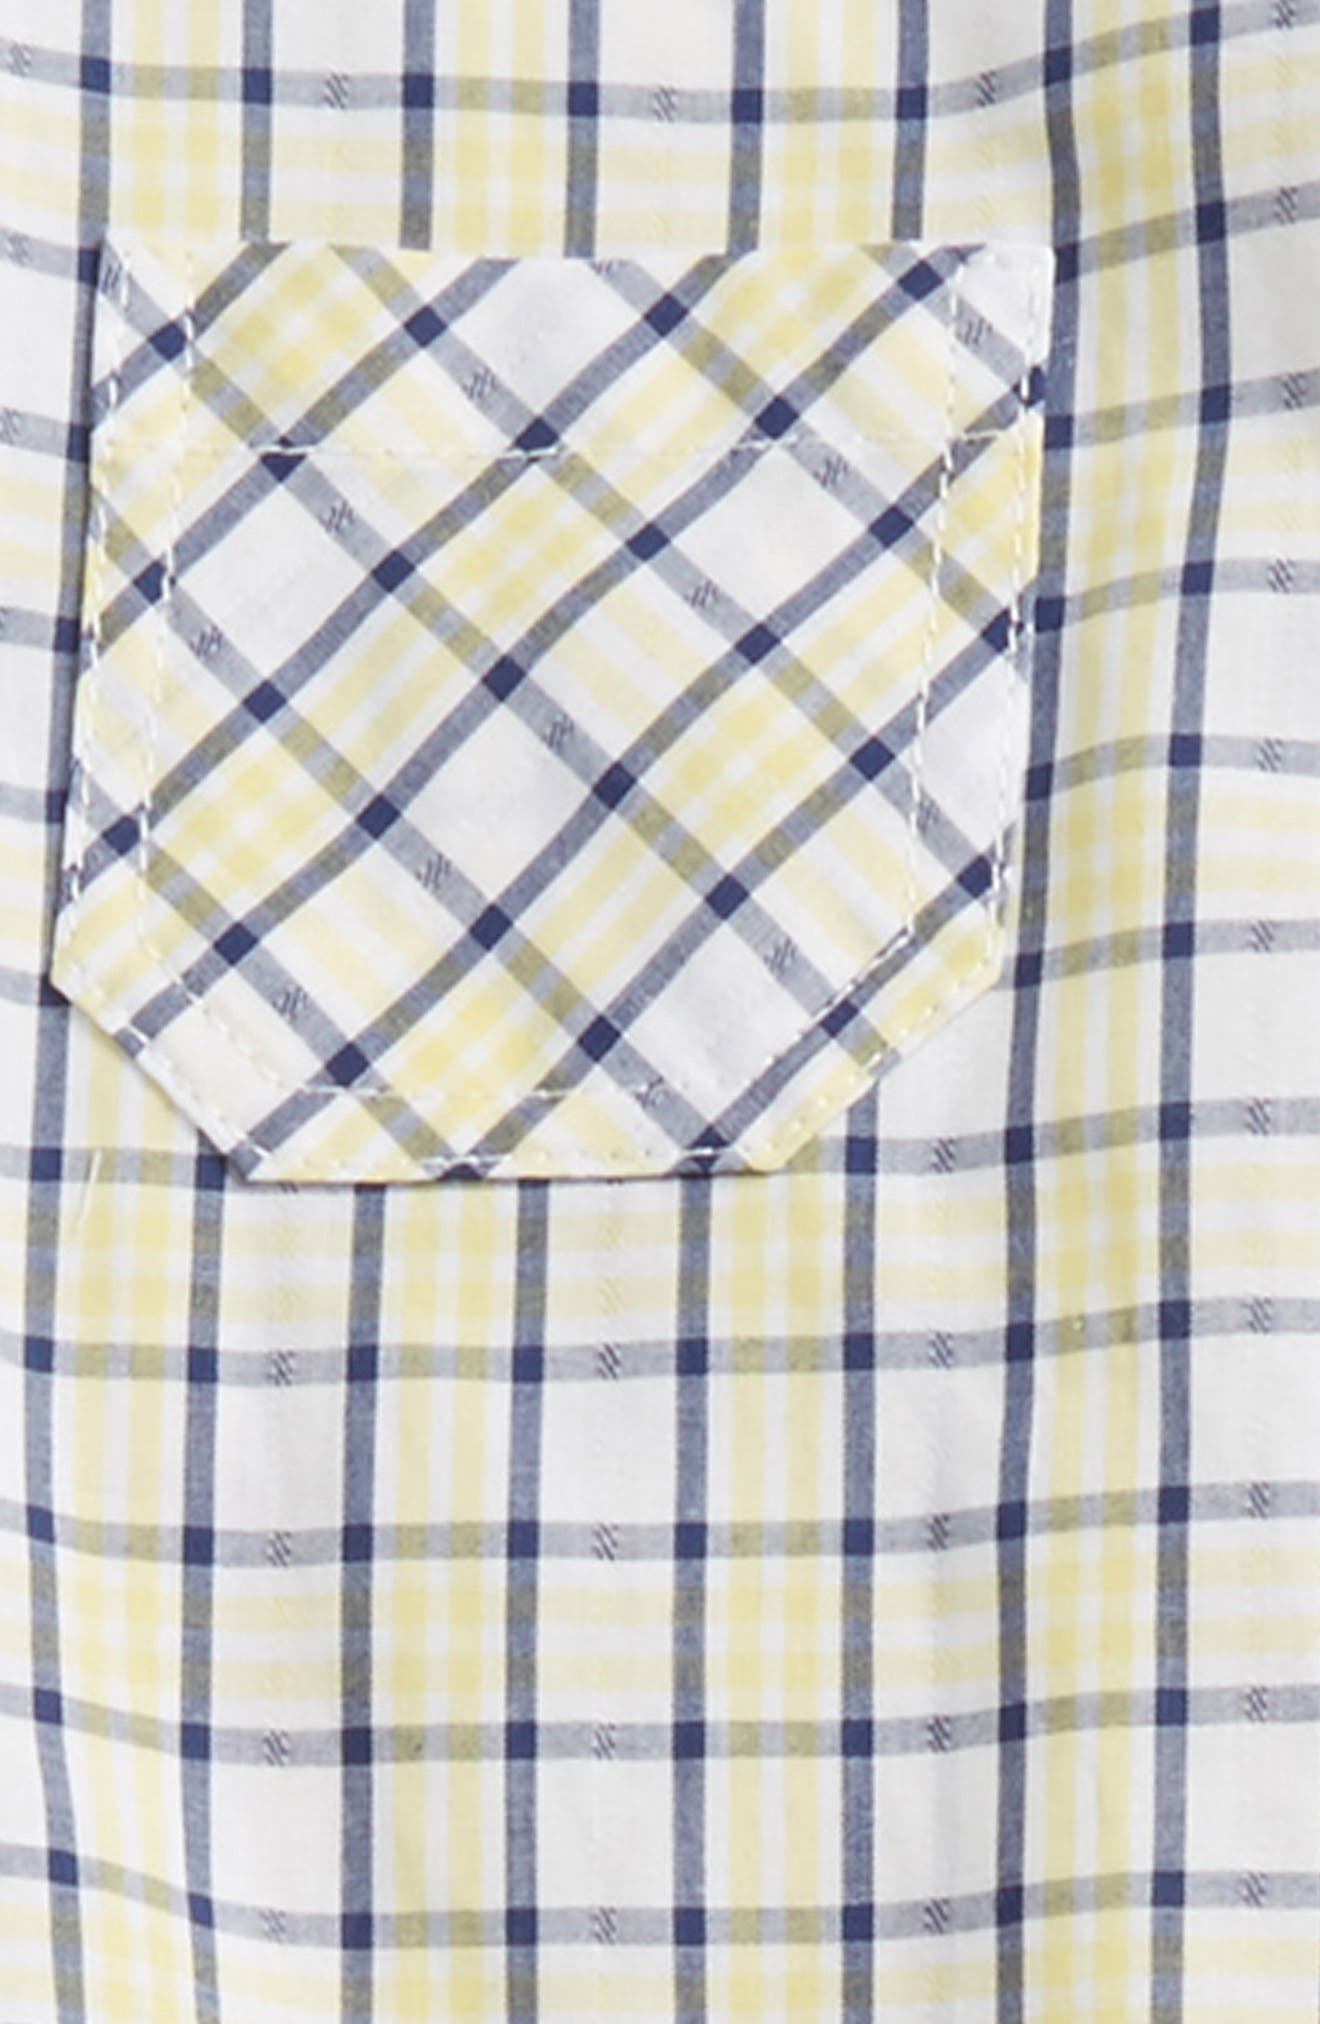 Plaid Top & Pants Set,                             Alternate thumbnail 2, color,                             Yellow/ Blue